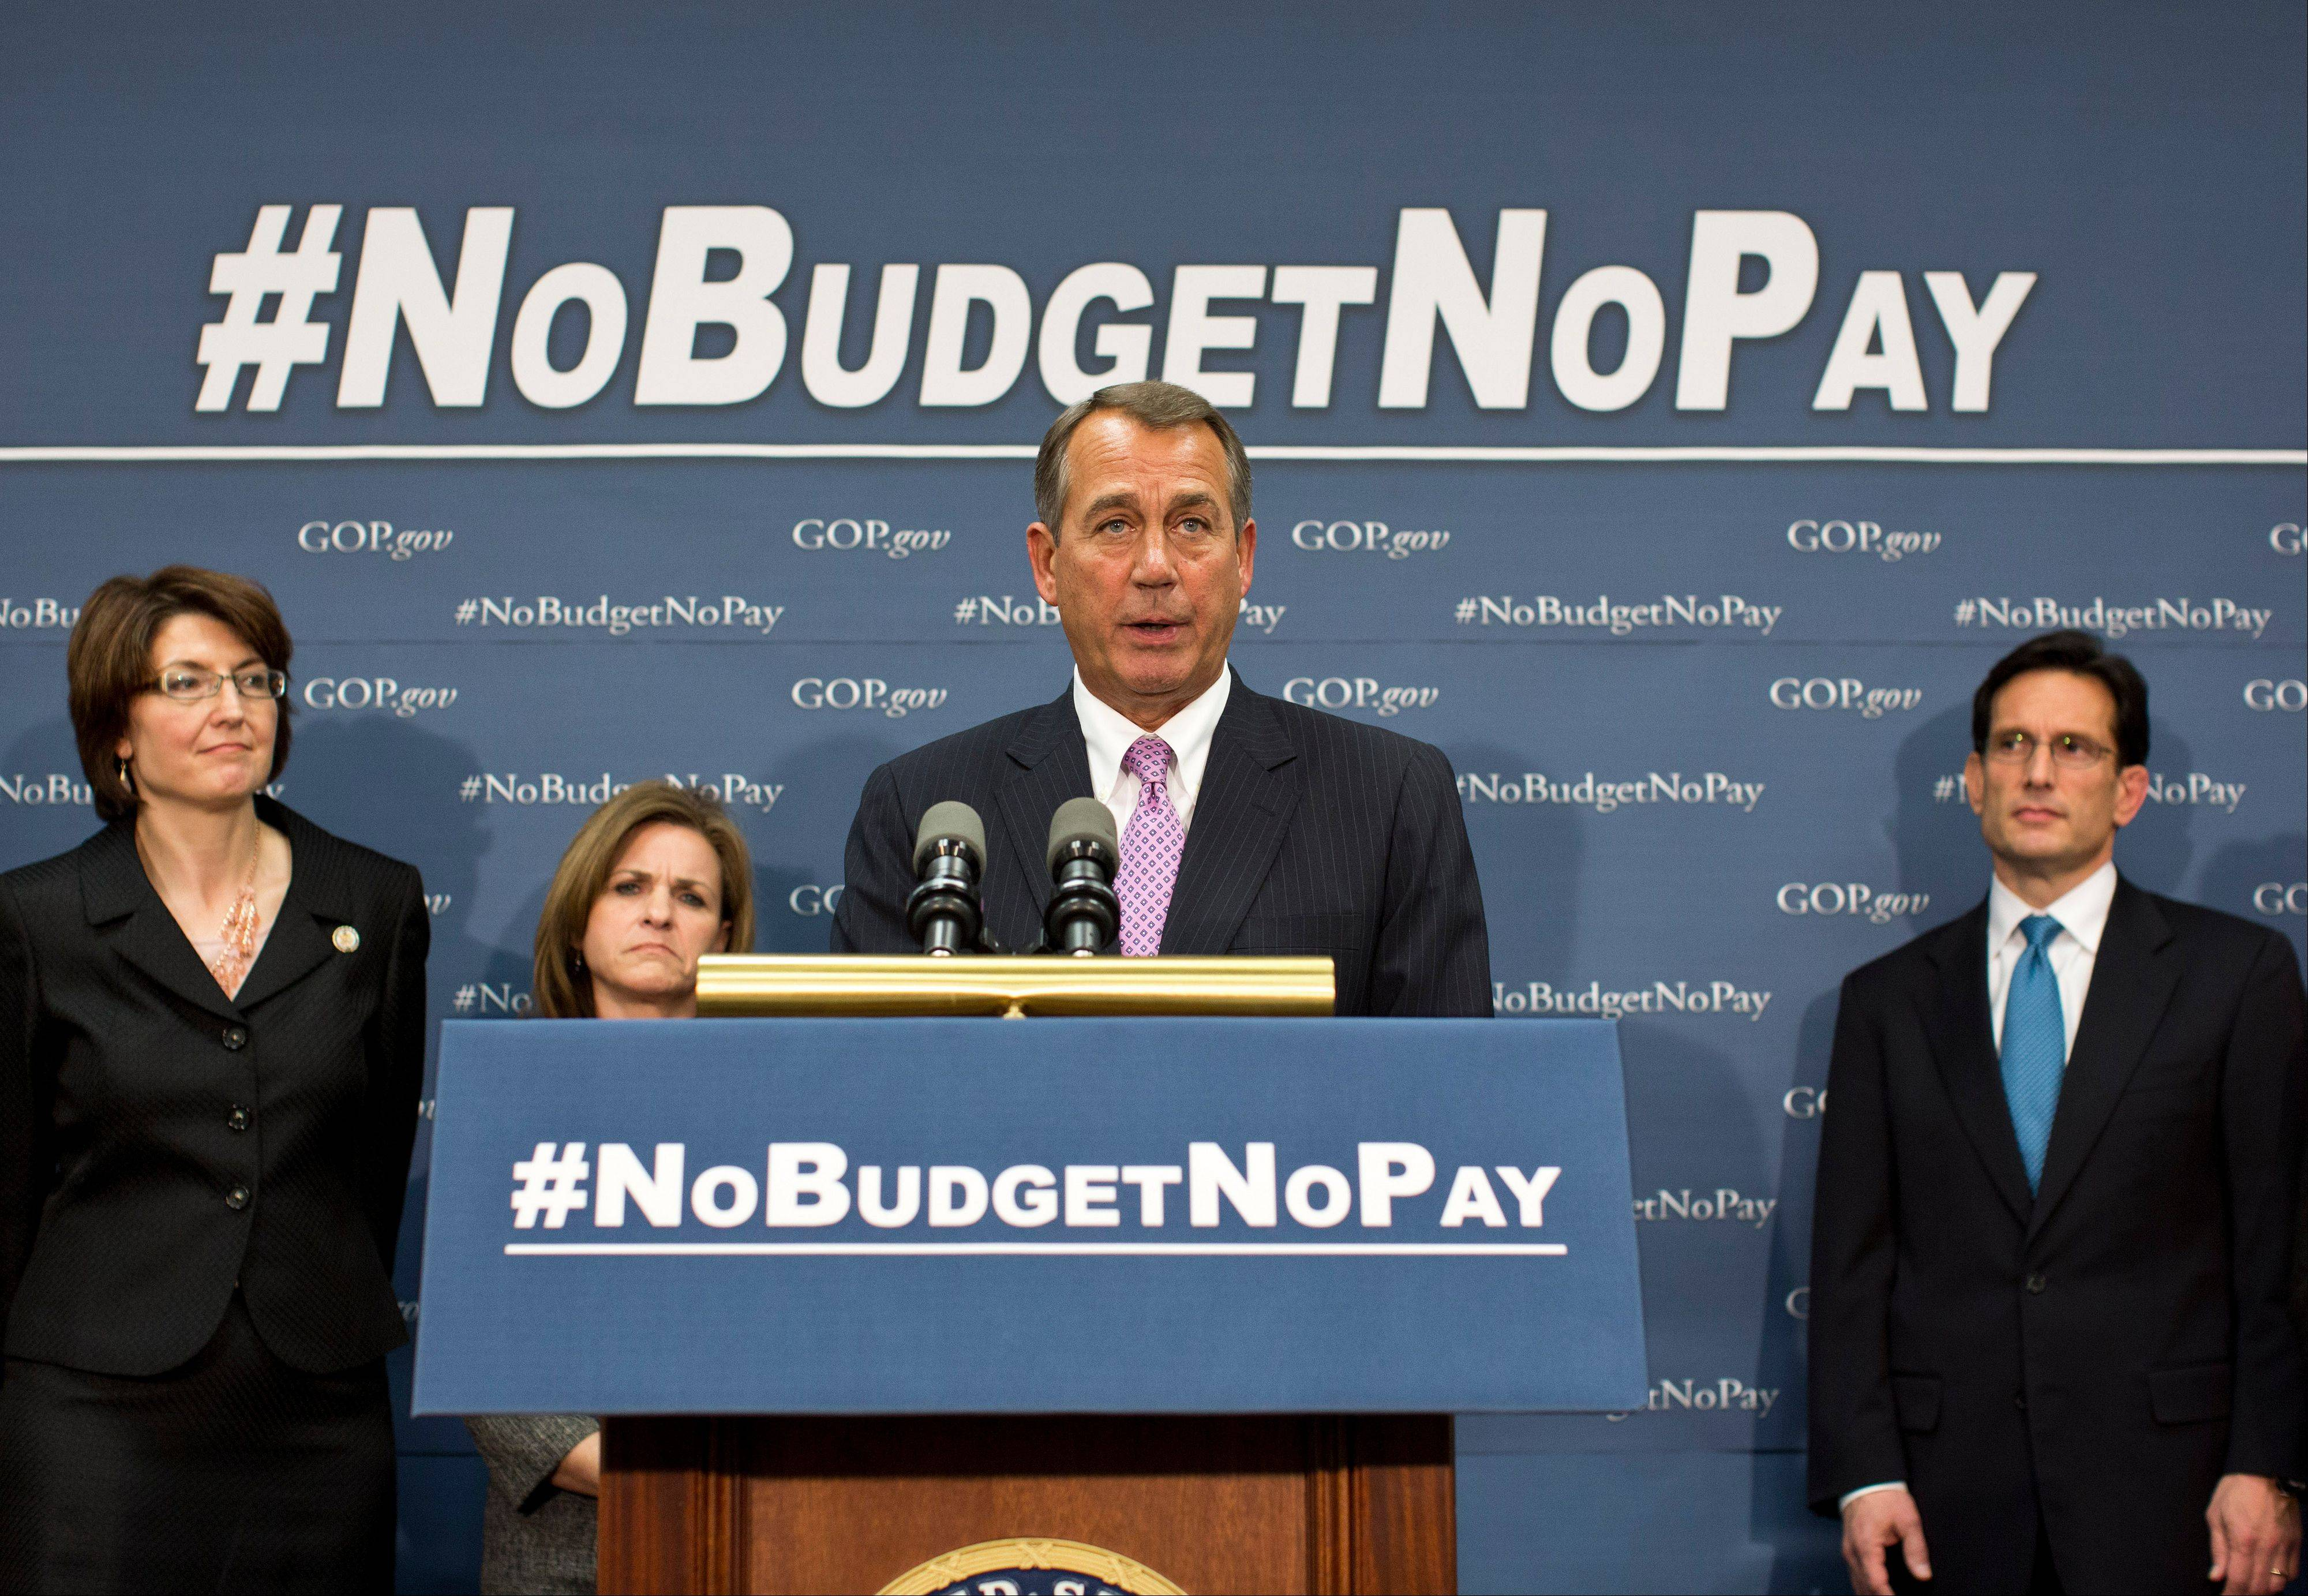 Speaker of the House John Boehner and the House GOP leadership speak to reporters after a closed-door meeting on avoiding a potential debt crisis, at the Capitol on Tuesday.